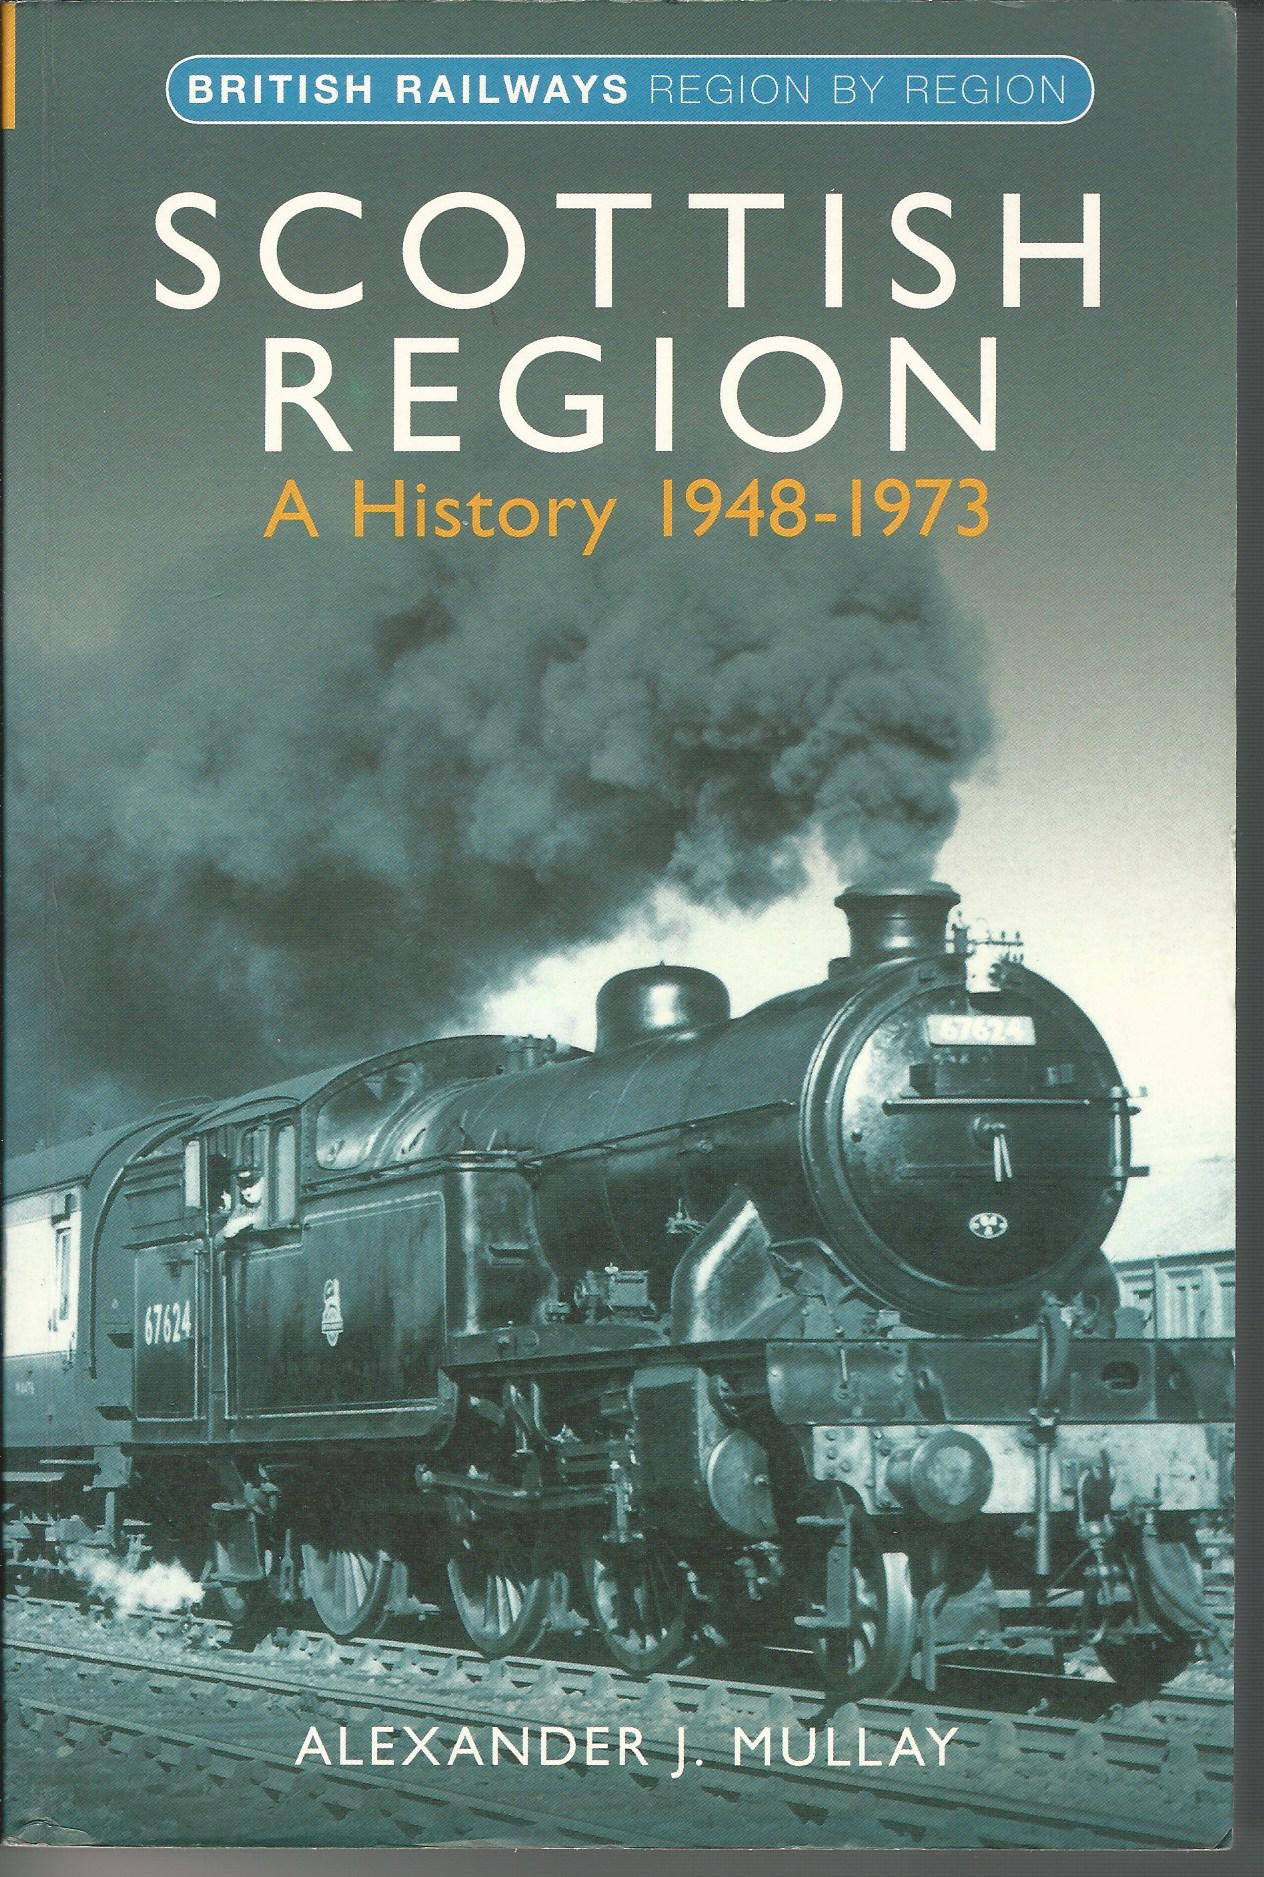 Image for Scottish Region: A History 1948-1973.